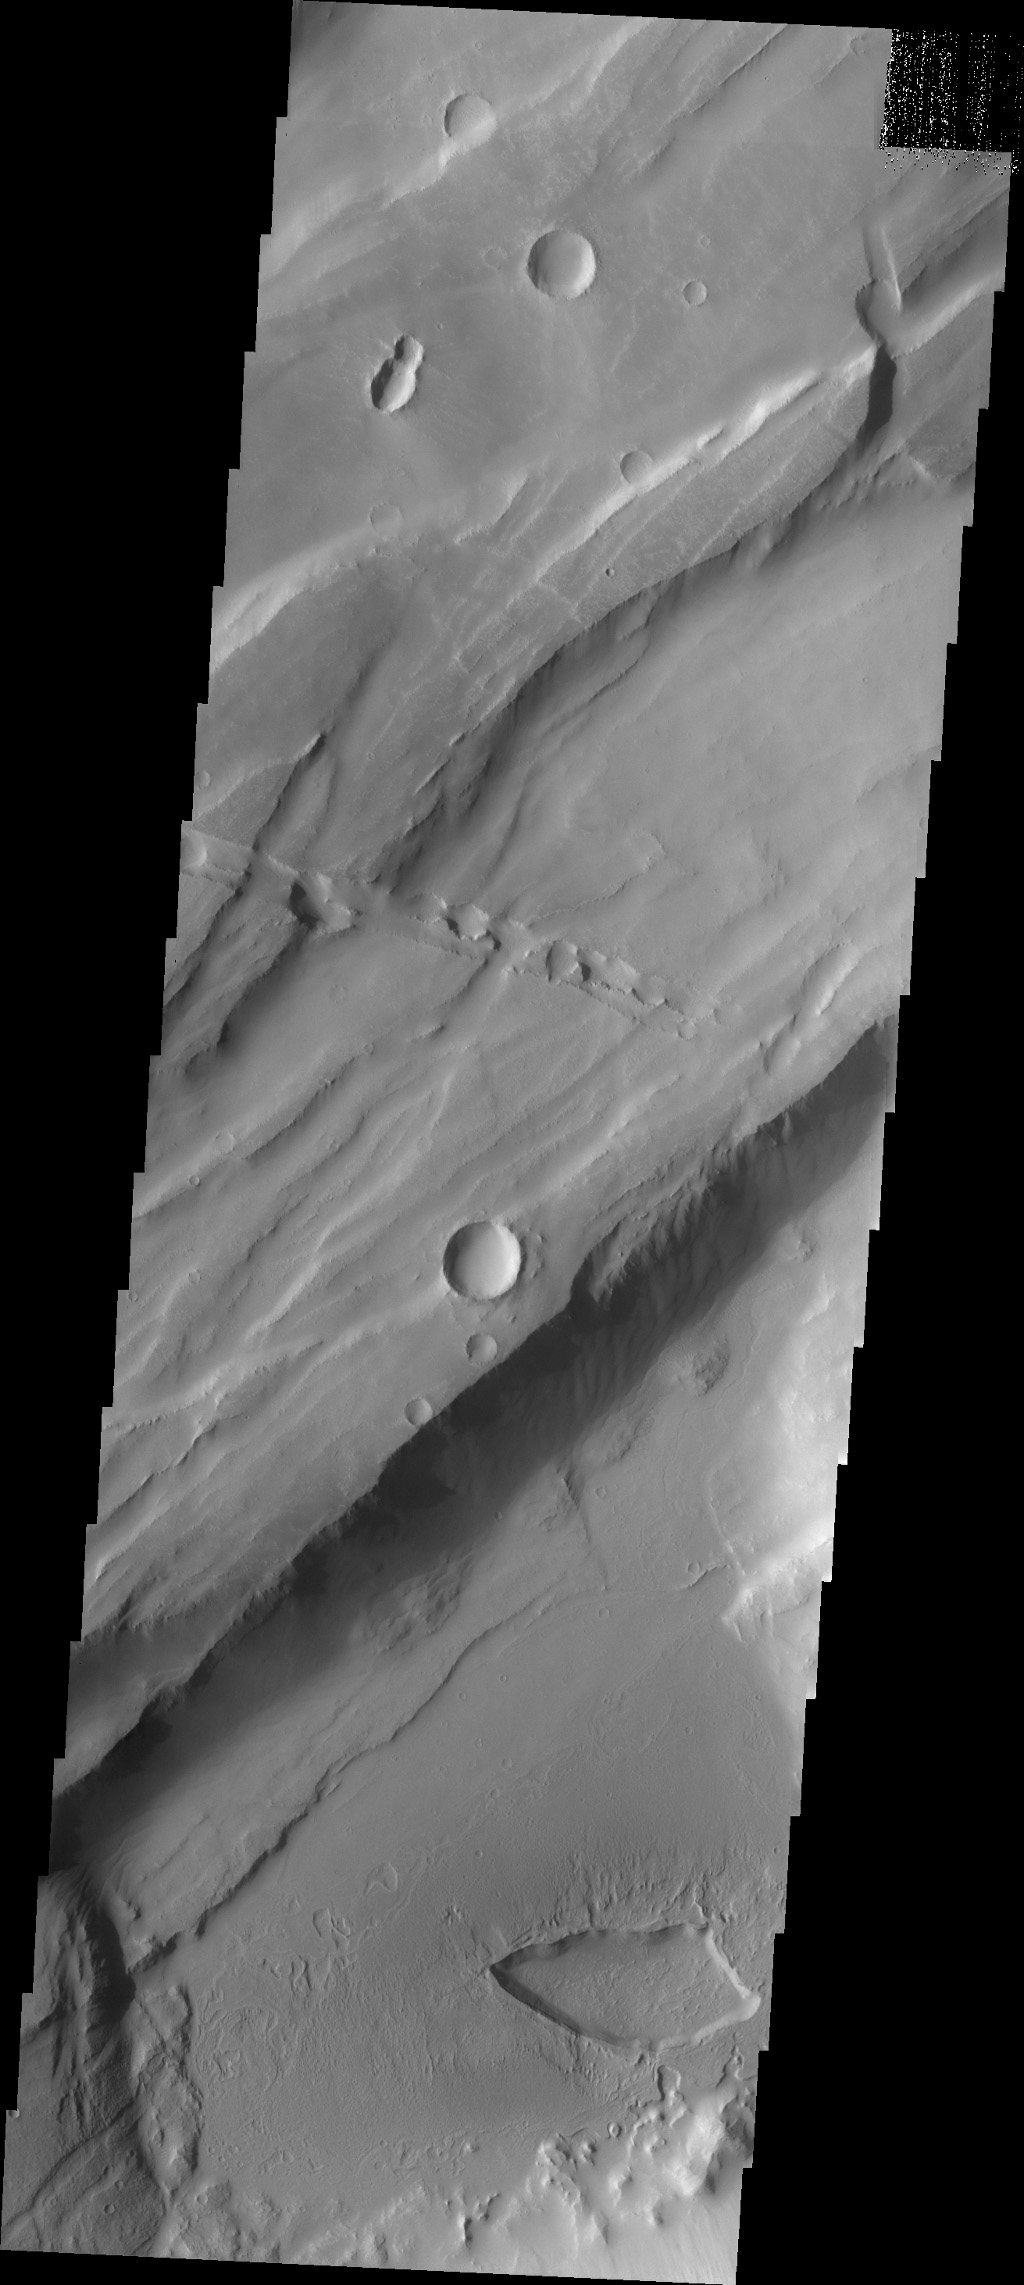 Do you see what I see in this image captured by NASA's 2001 Mars Odyssey spacecraft? Another bug!